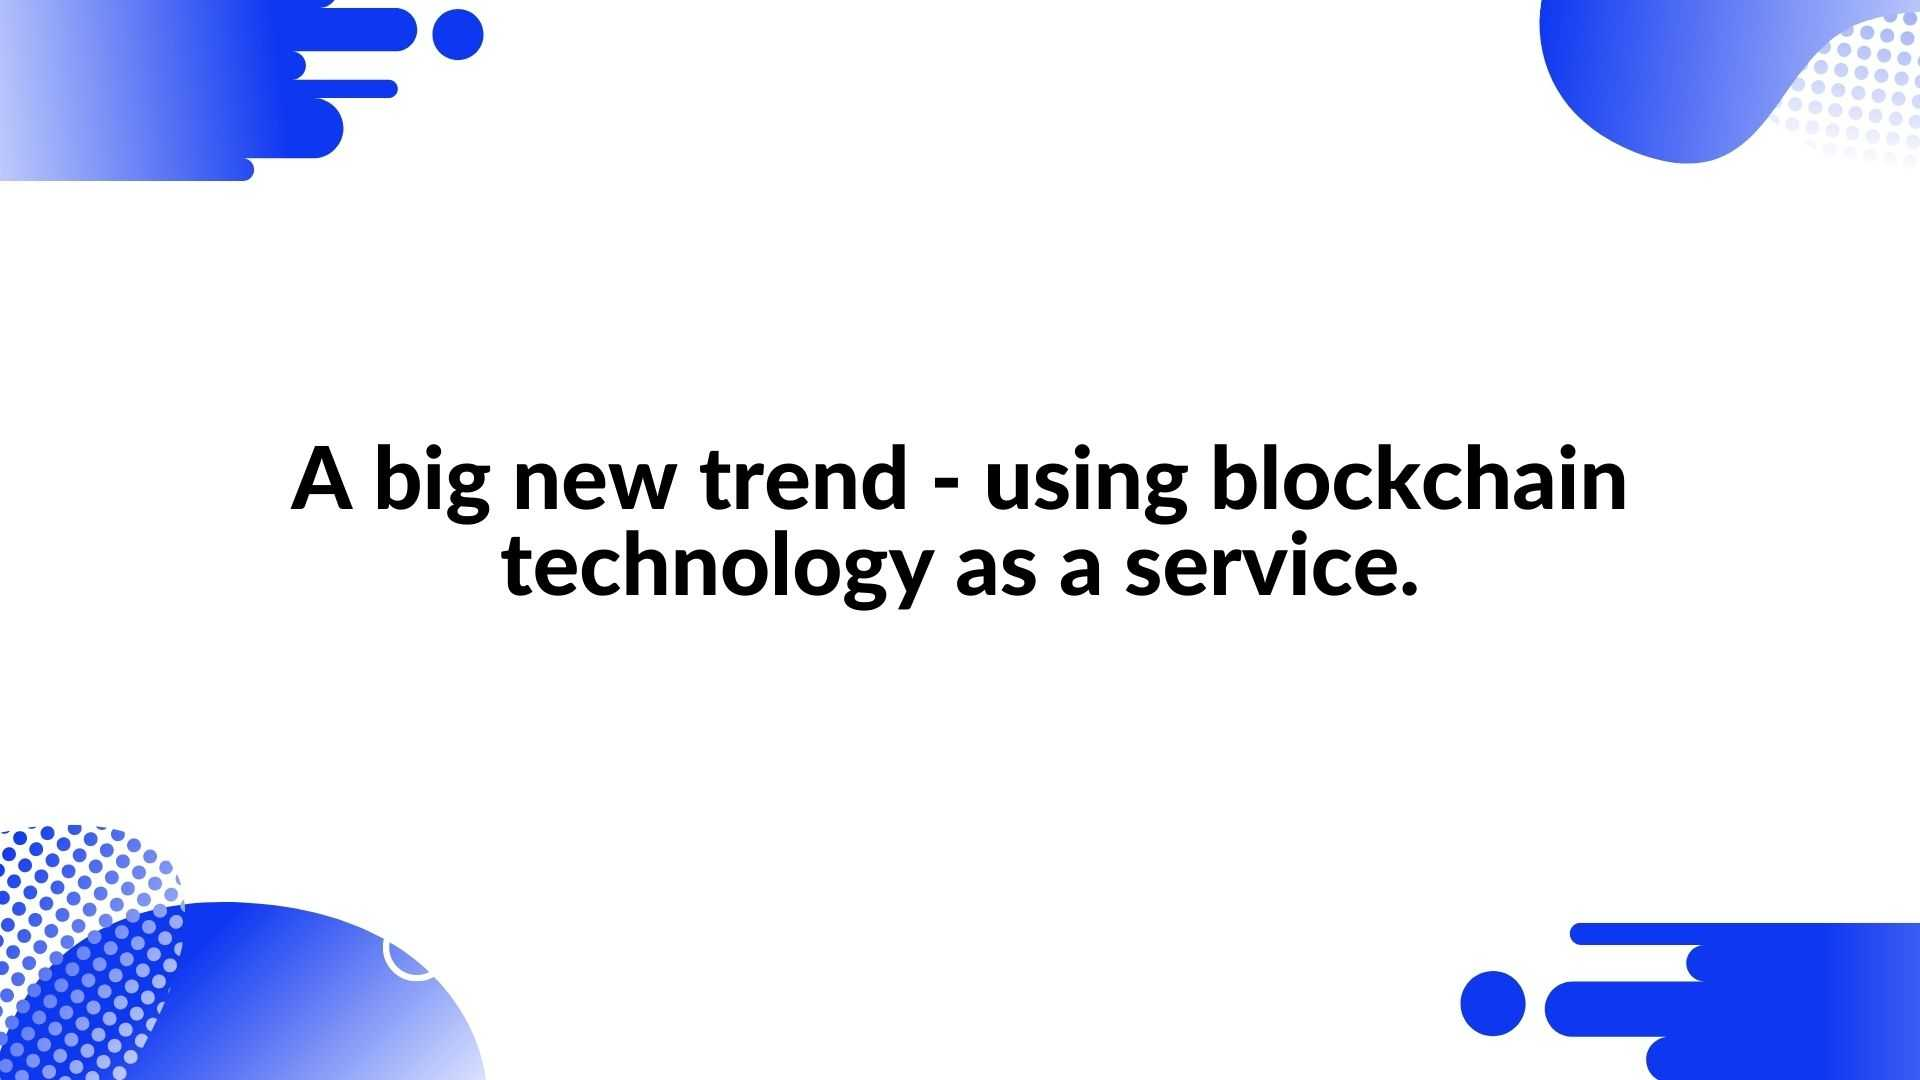 A big new trend - using blockchain technology as a service - animated video for crypto business